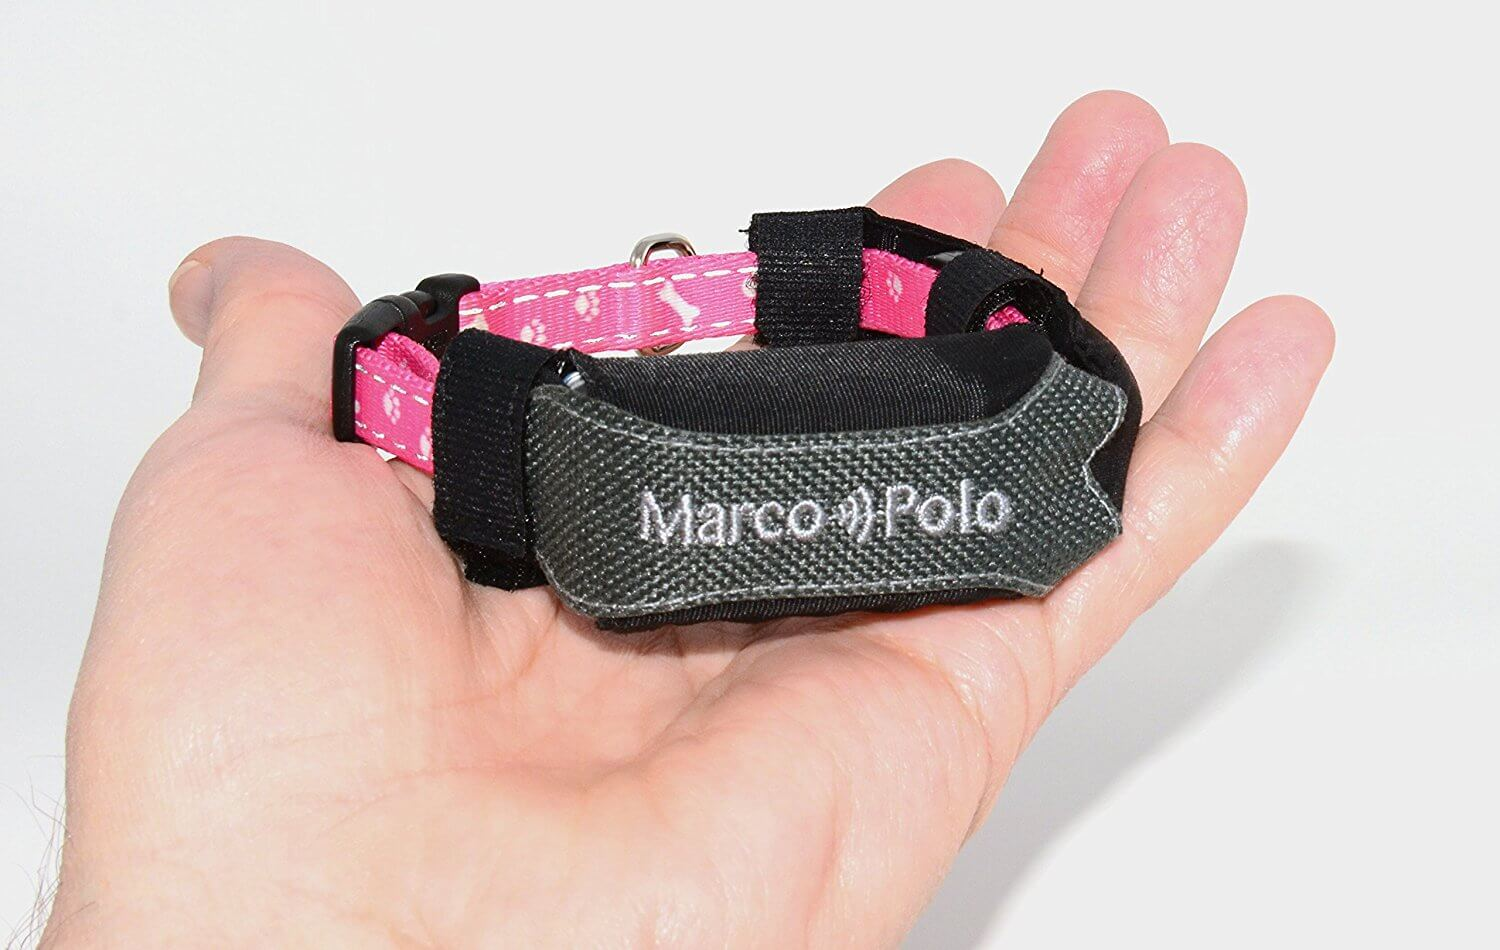 MARCOPOLO Advanced Pet Tracking